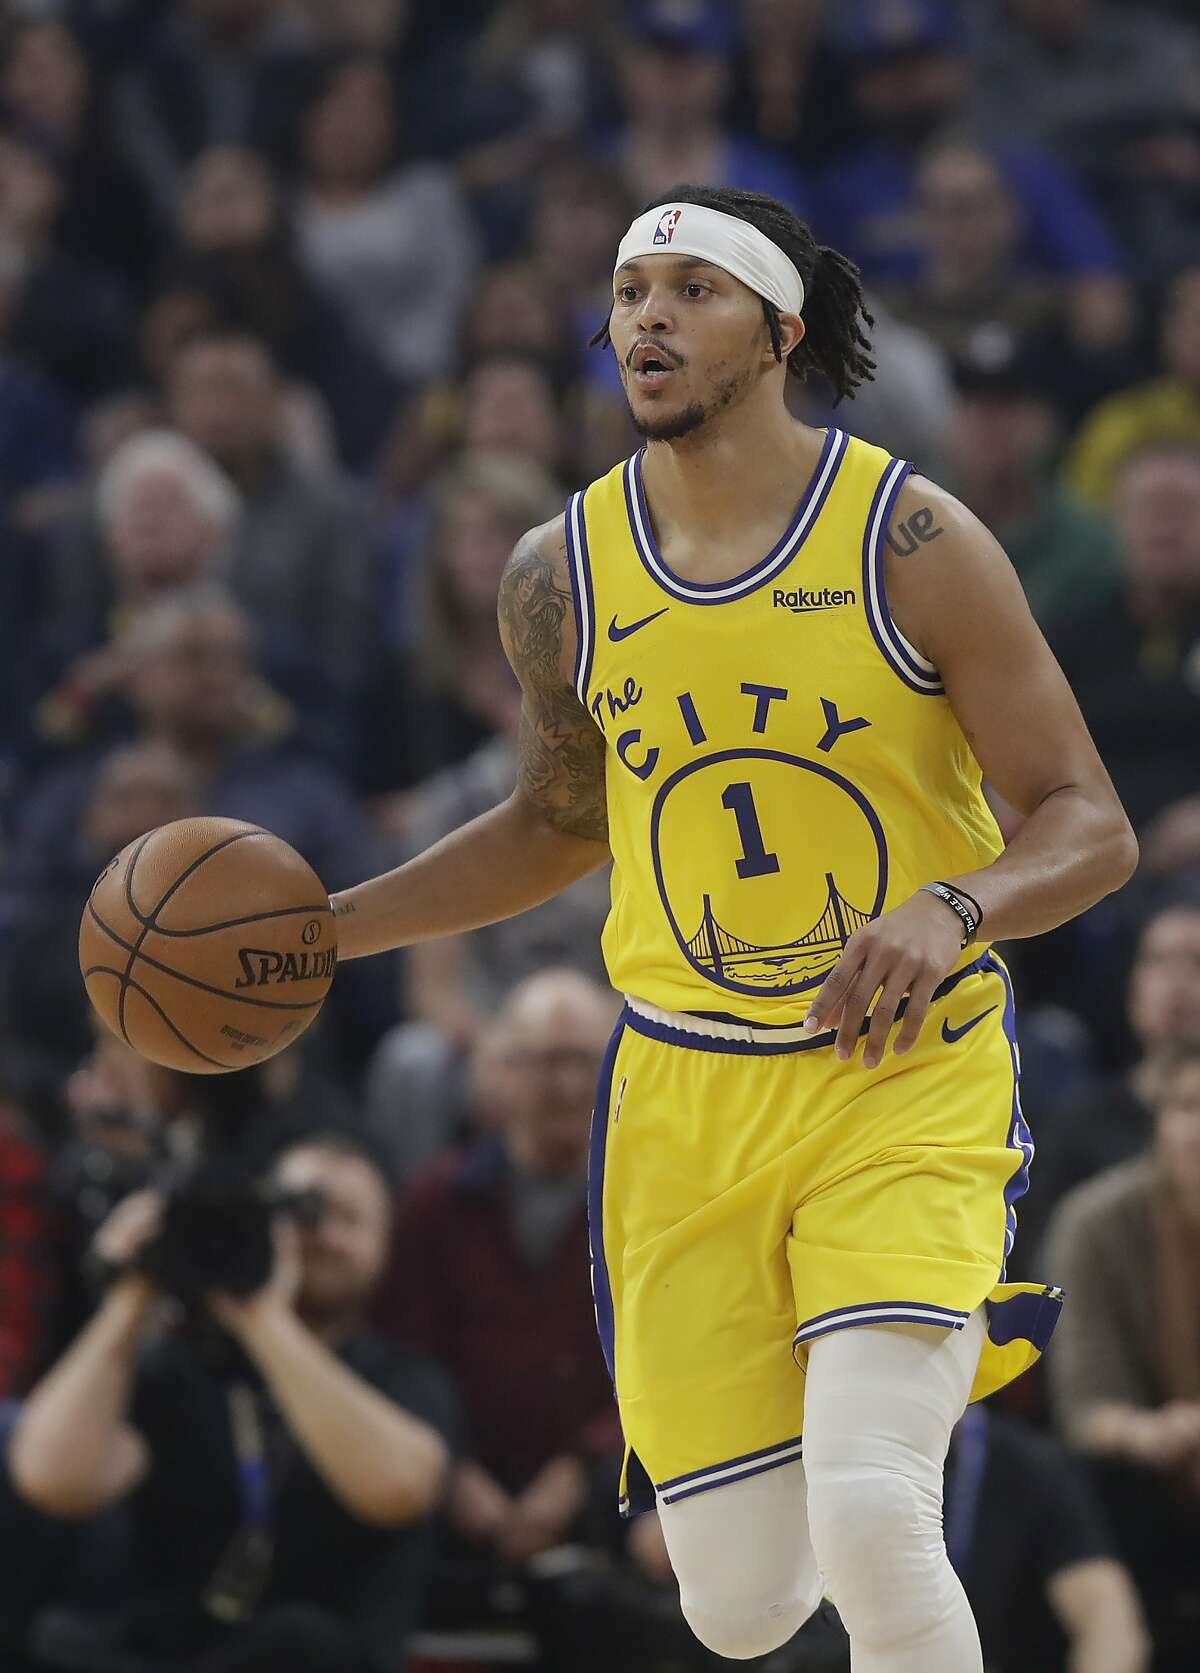 Golden State Warriors guard Damion Lee (1) against the Phoenix Suns during an NBA basketball game in San Francisco, Friday, Dec. 27, 2019. (AP Photo/Jeff Chiu)